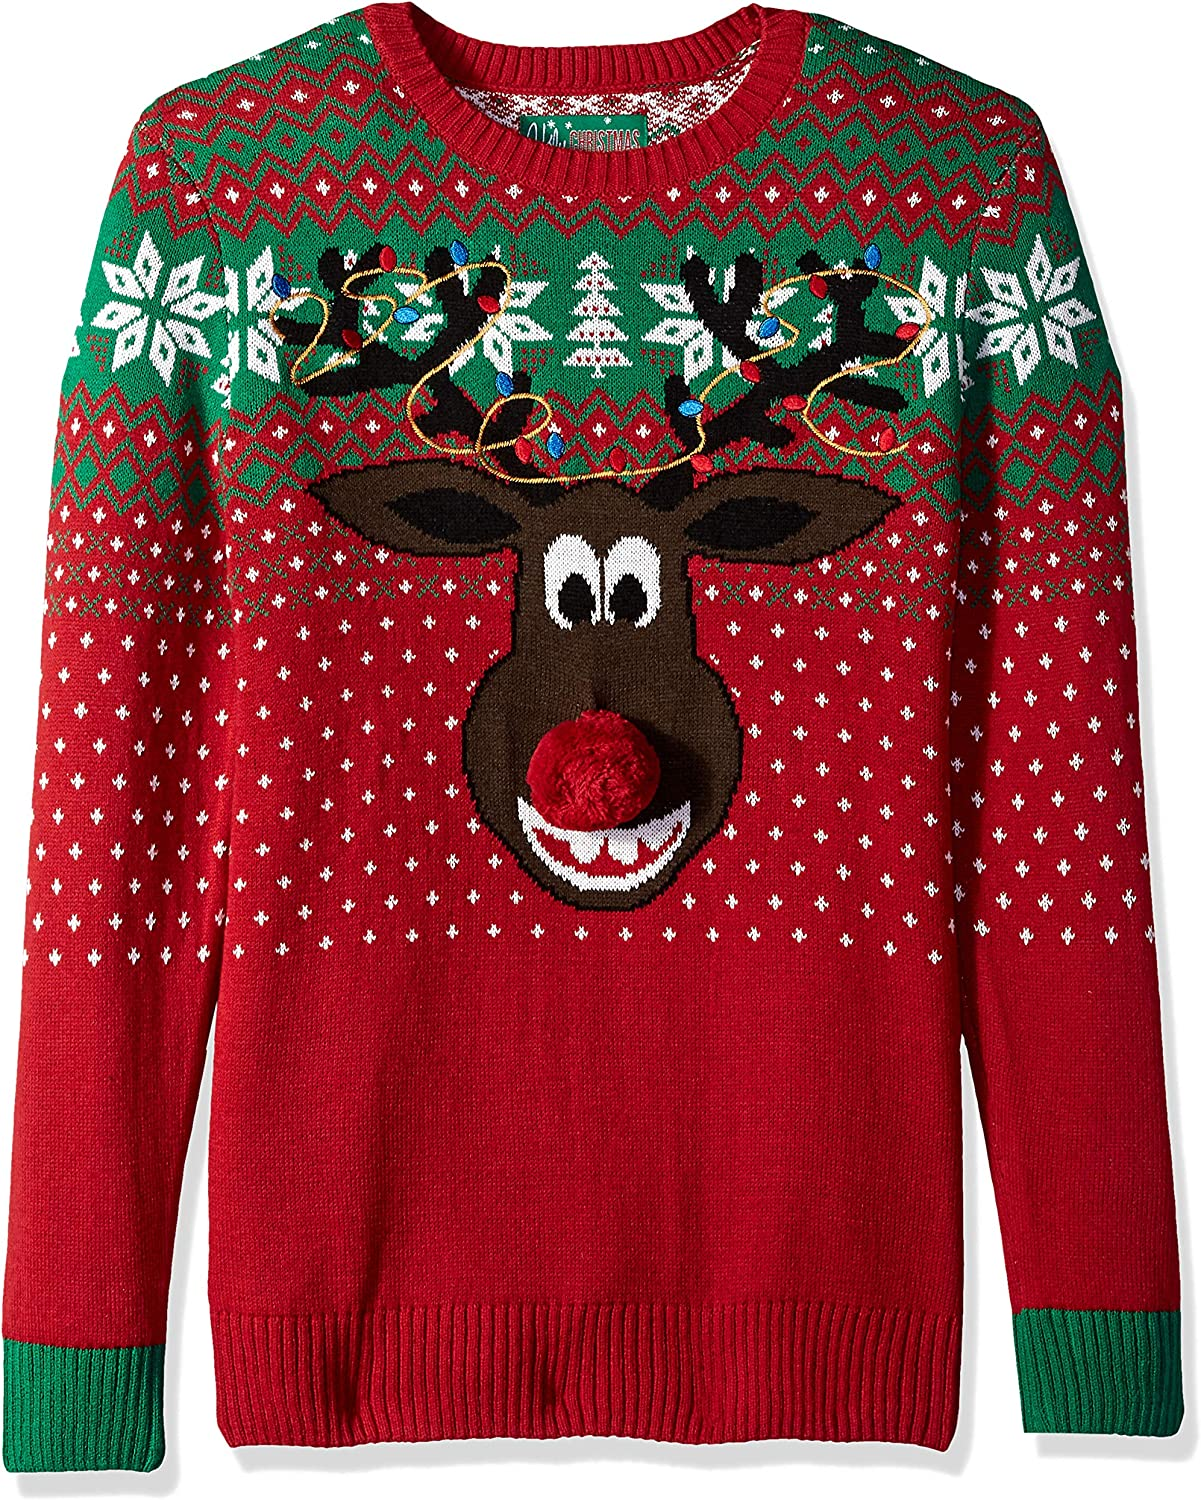 Ugly Christmas Sweater Company Men's Assorted Animals and Reindeer Crew Neck Xmas Sweaters